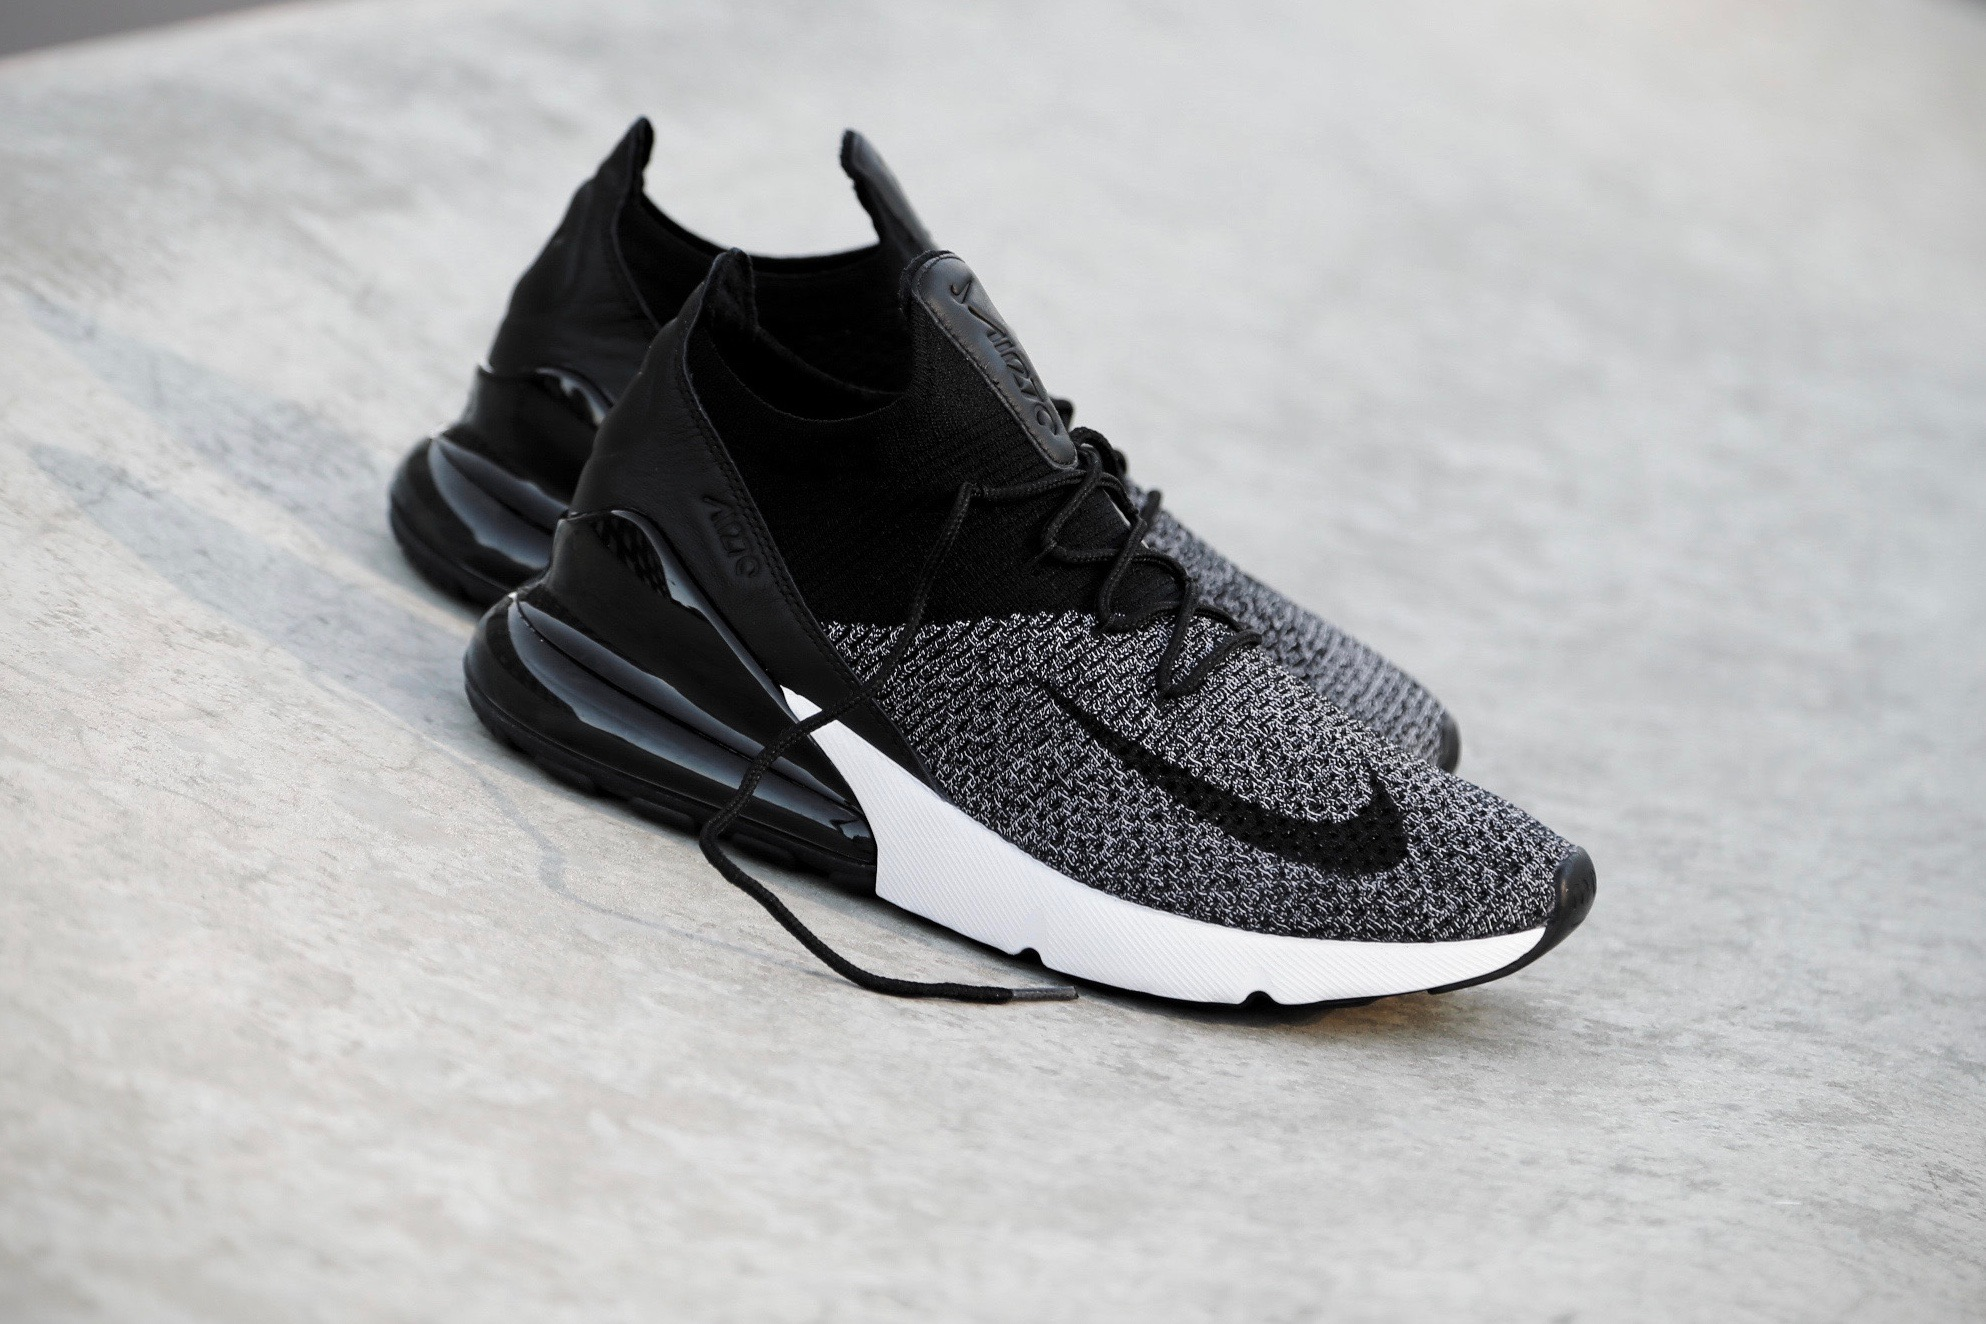 los angeles 111ee 4bcef Nike Air Max 270 Flyknit - Black / White